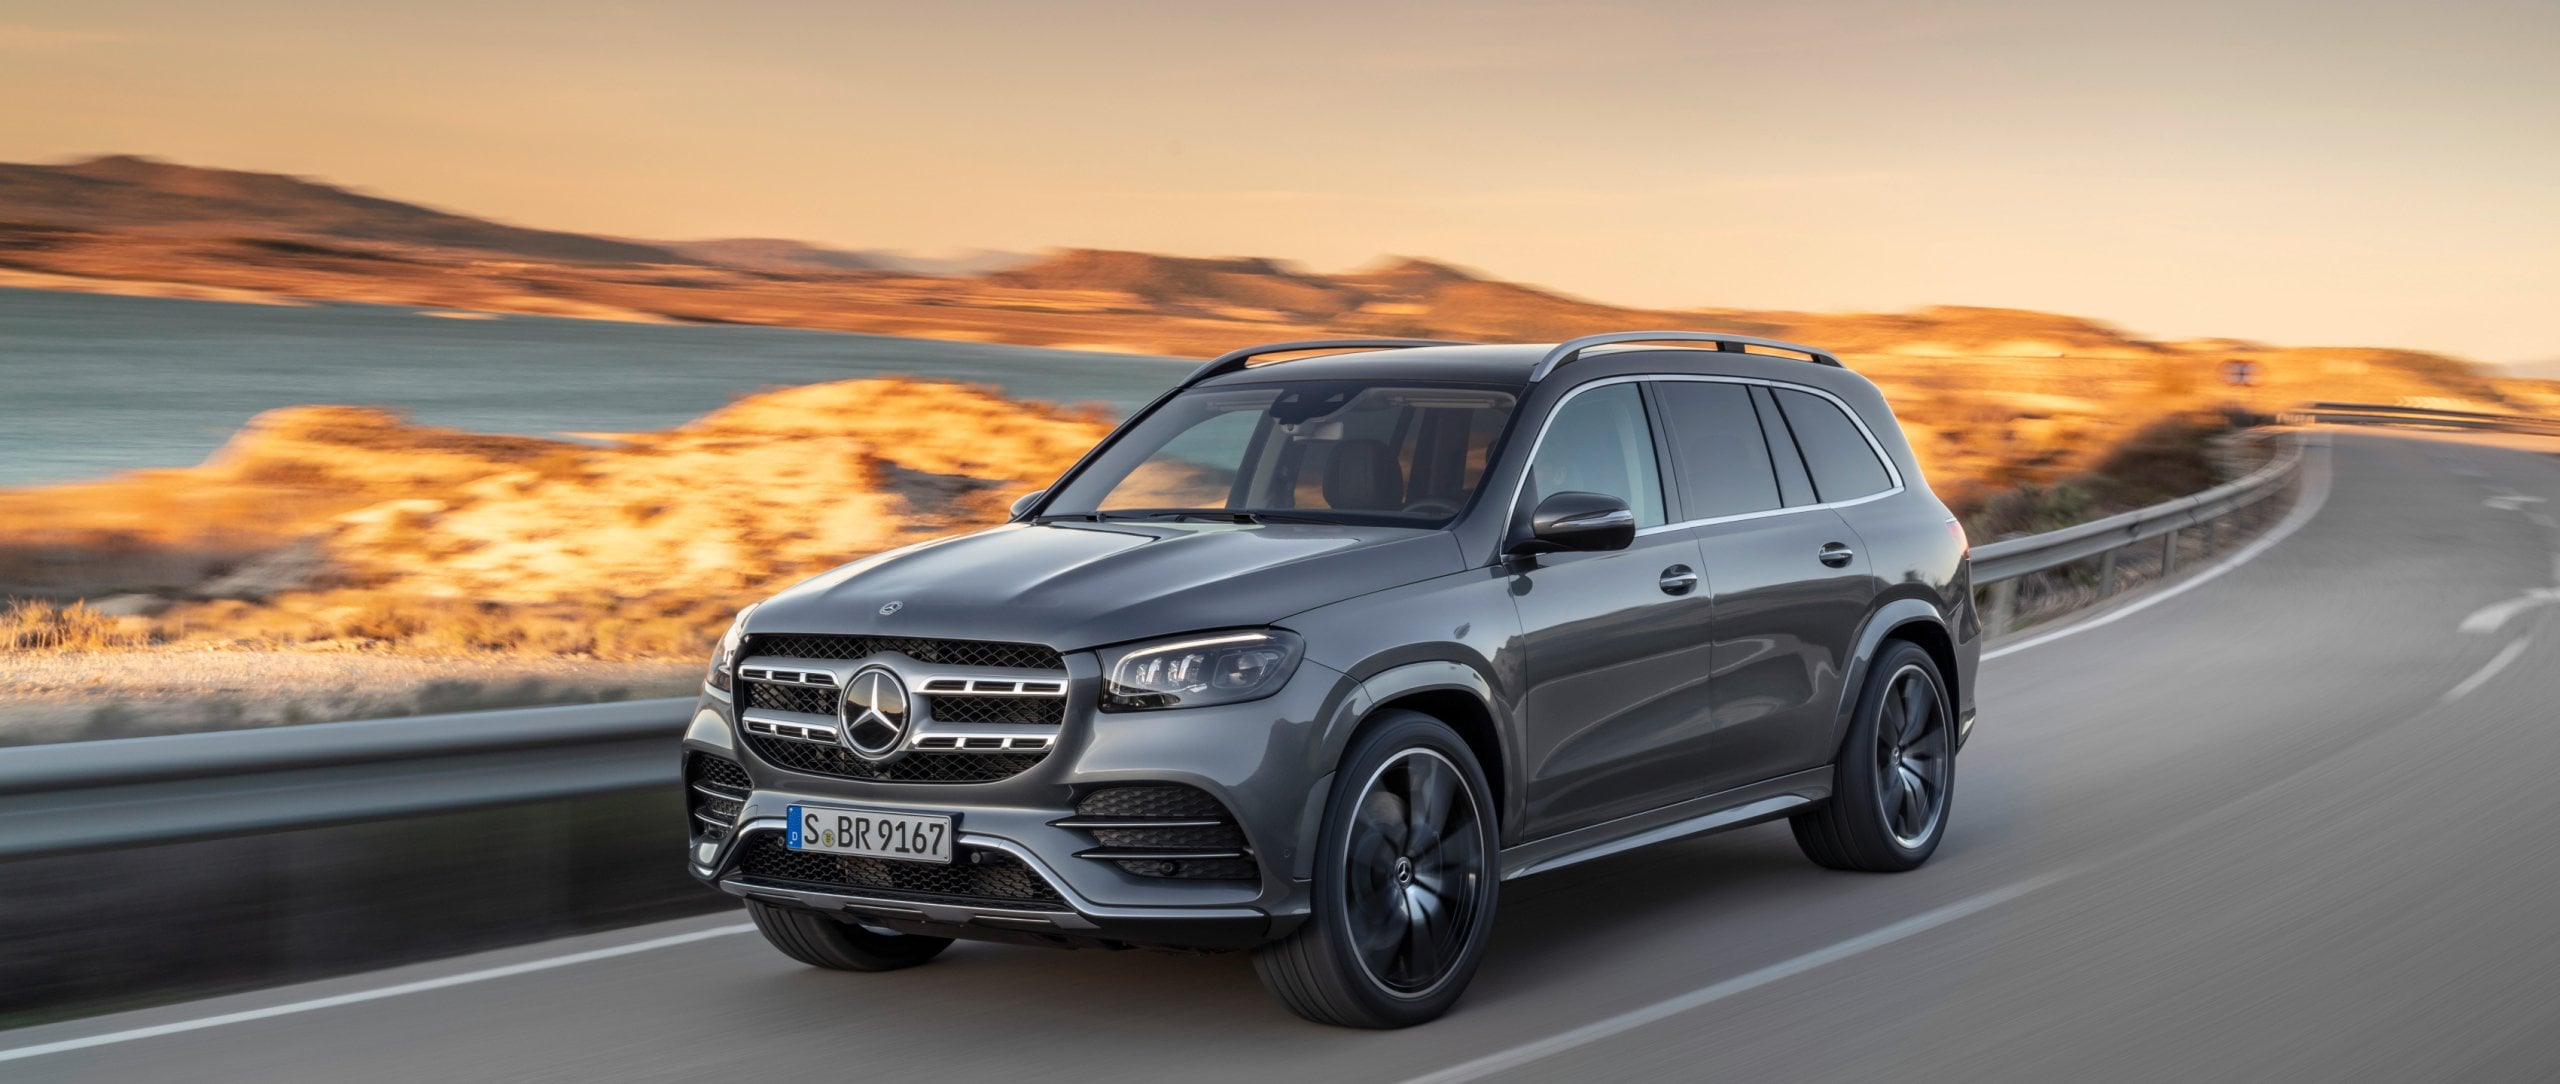 New Mercedes Suv >> The New Mercedes Benz Gls